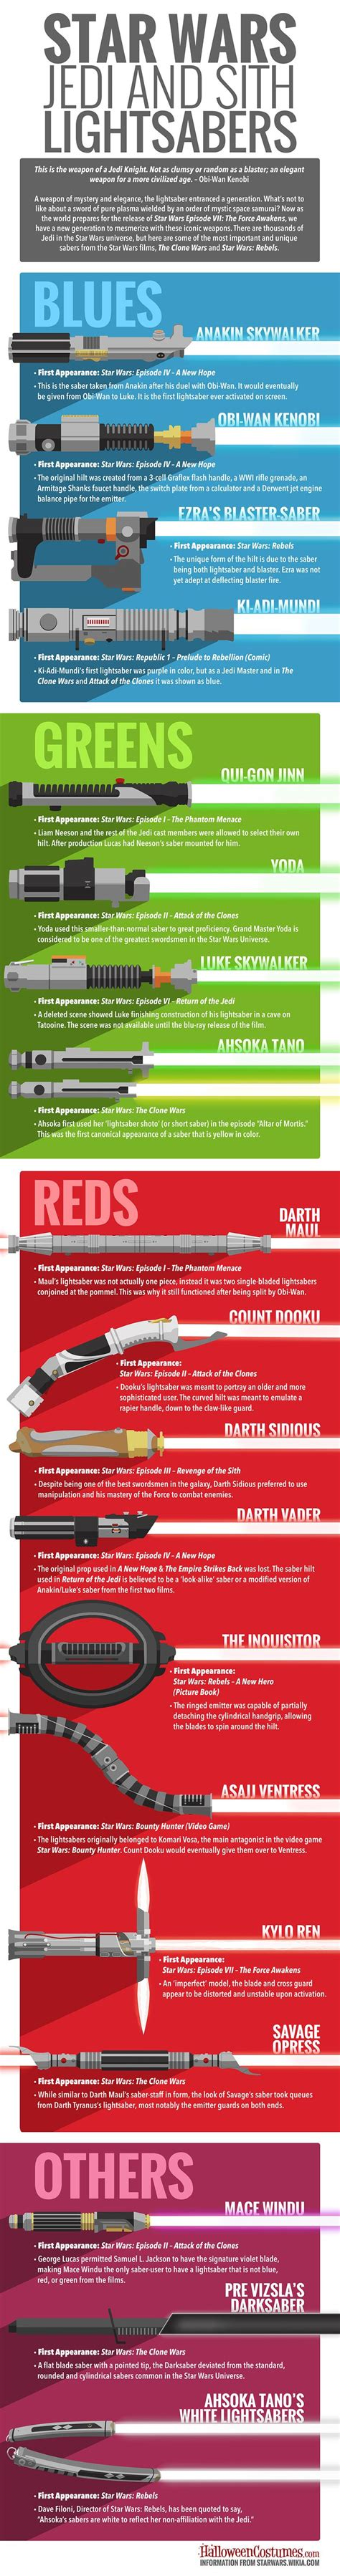 wars lightsaber colors the 25 best lightsaber colors ideas on